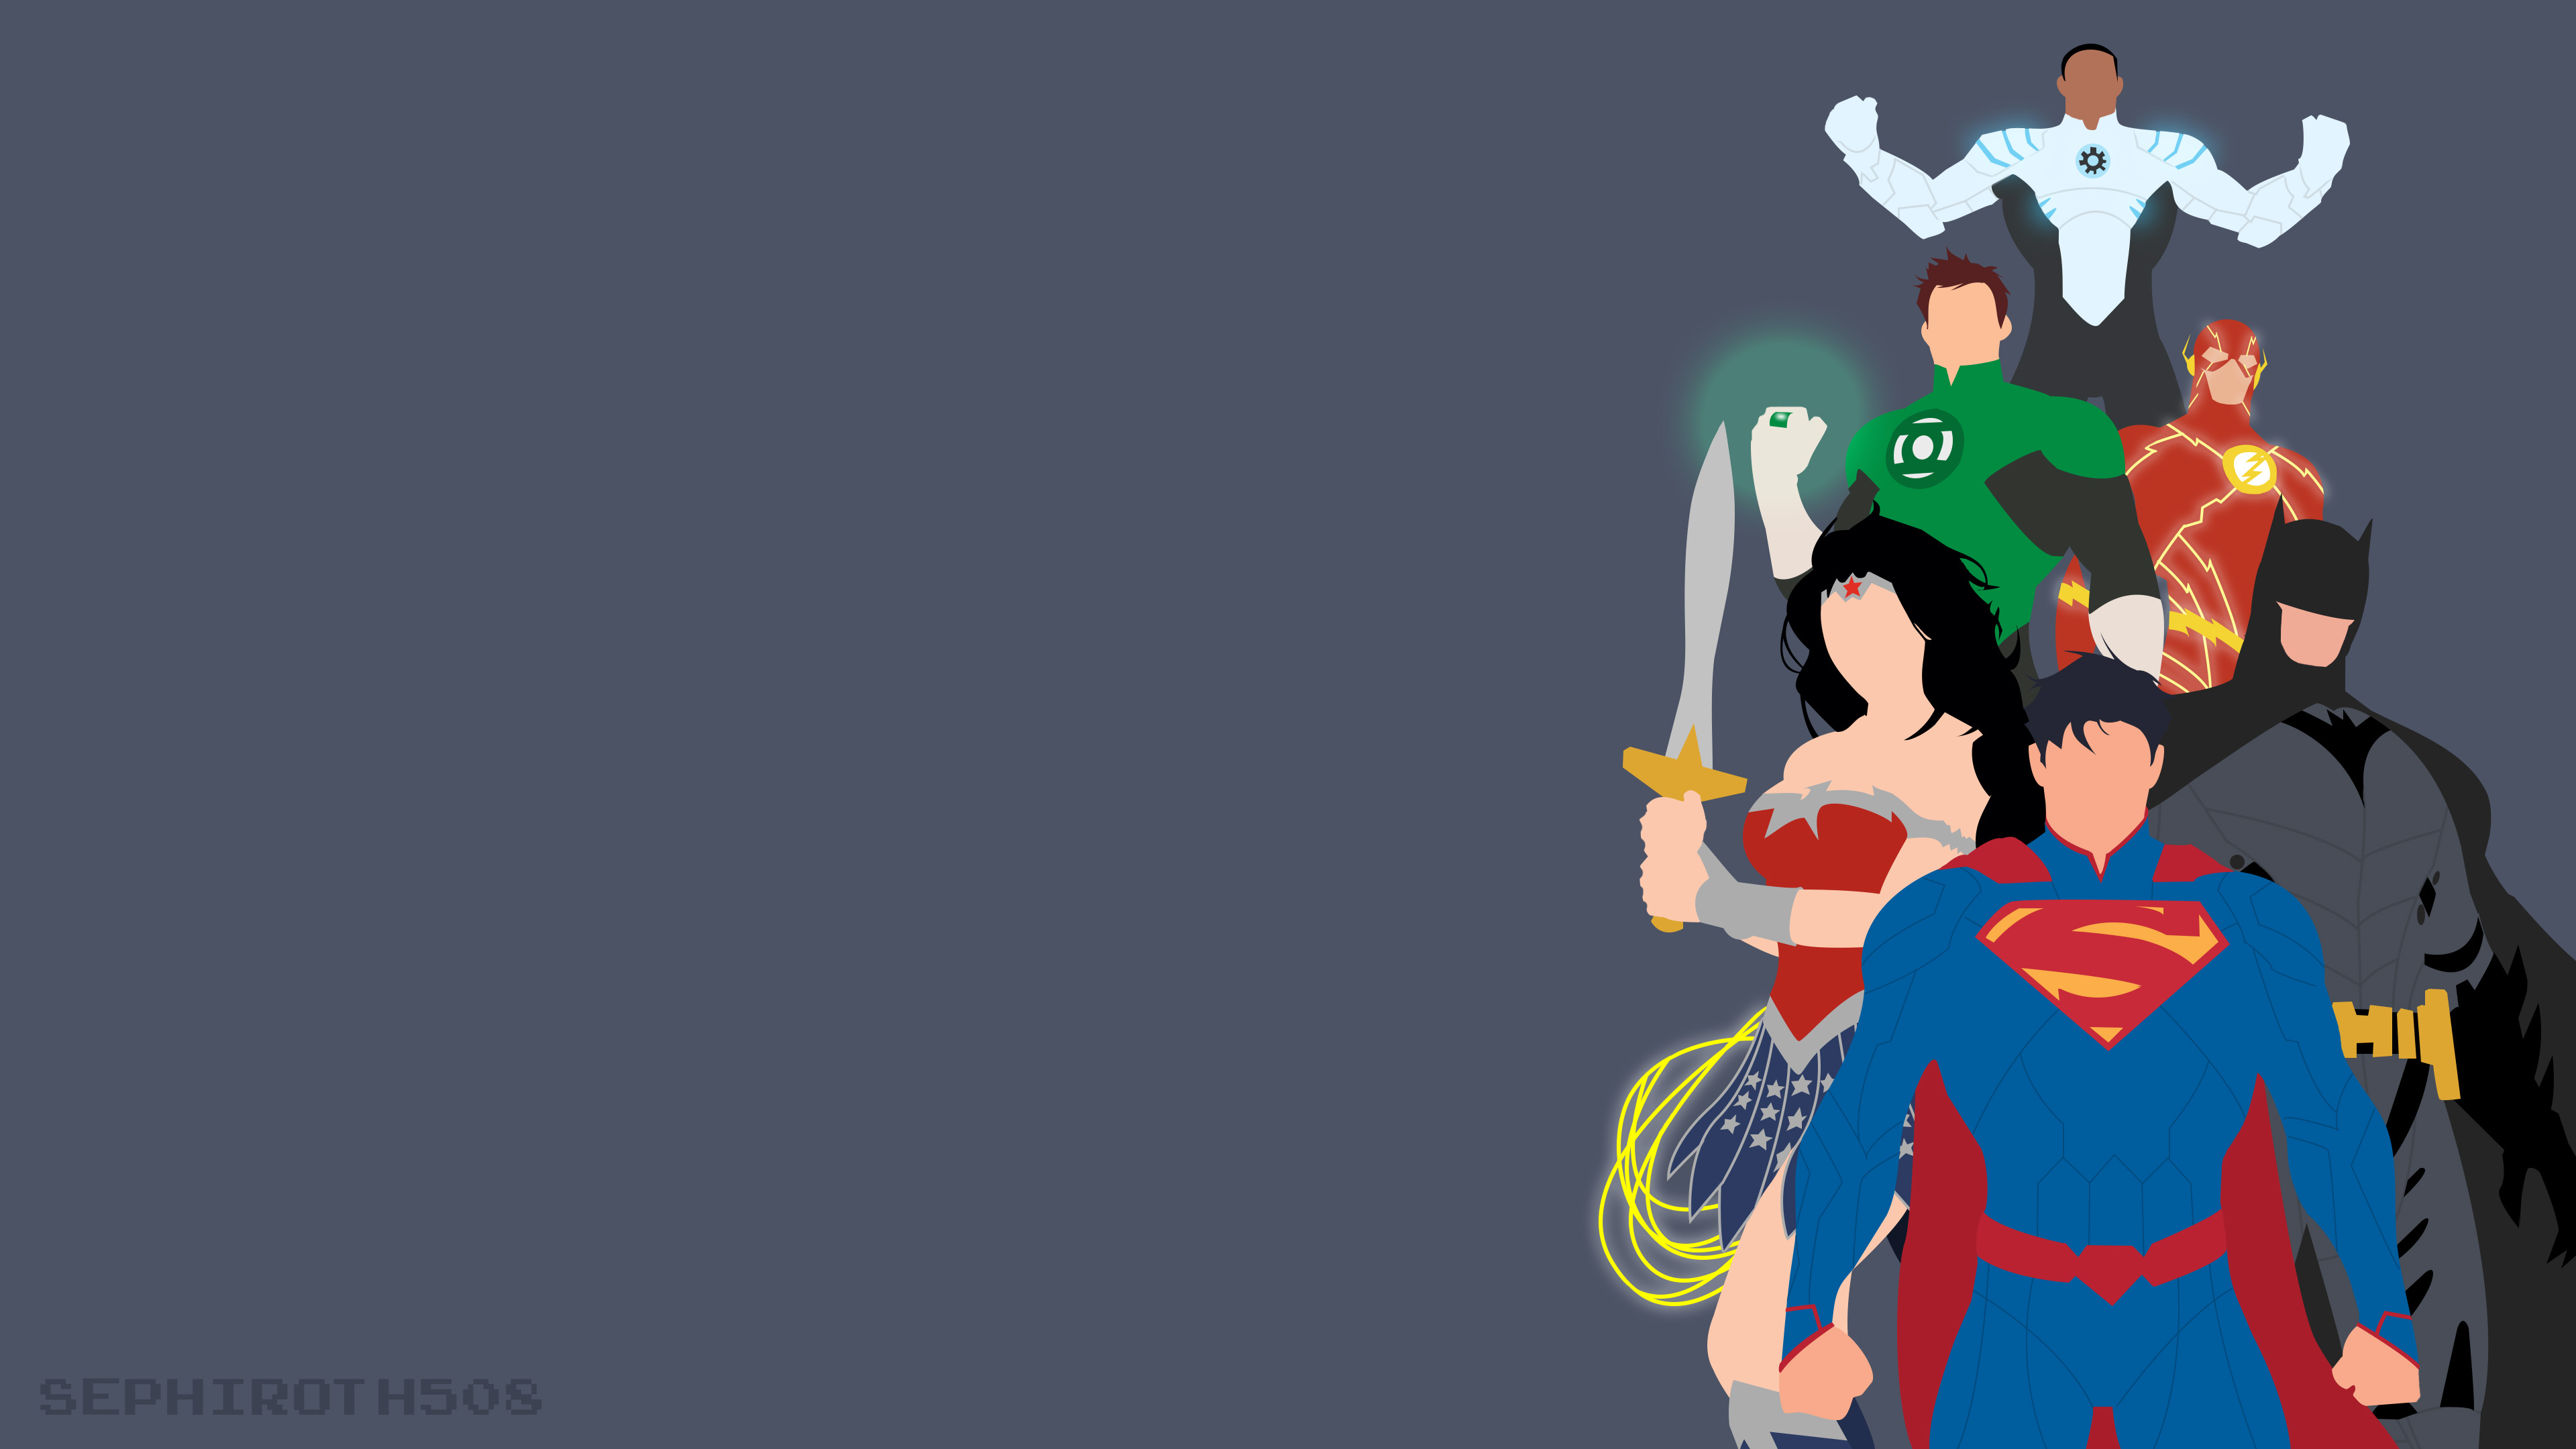 Justice League Minimalist HD Superheroes 4k Wallpapers Images